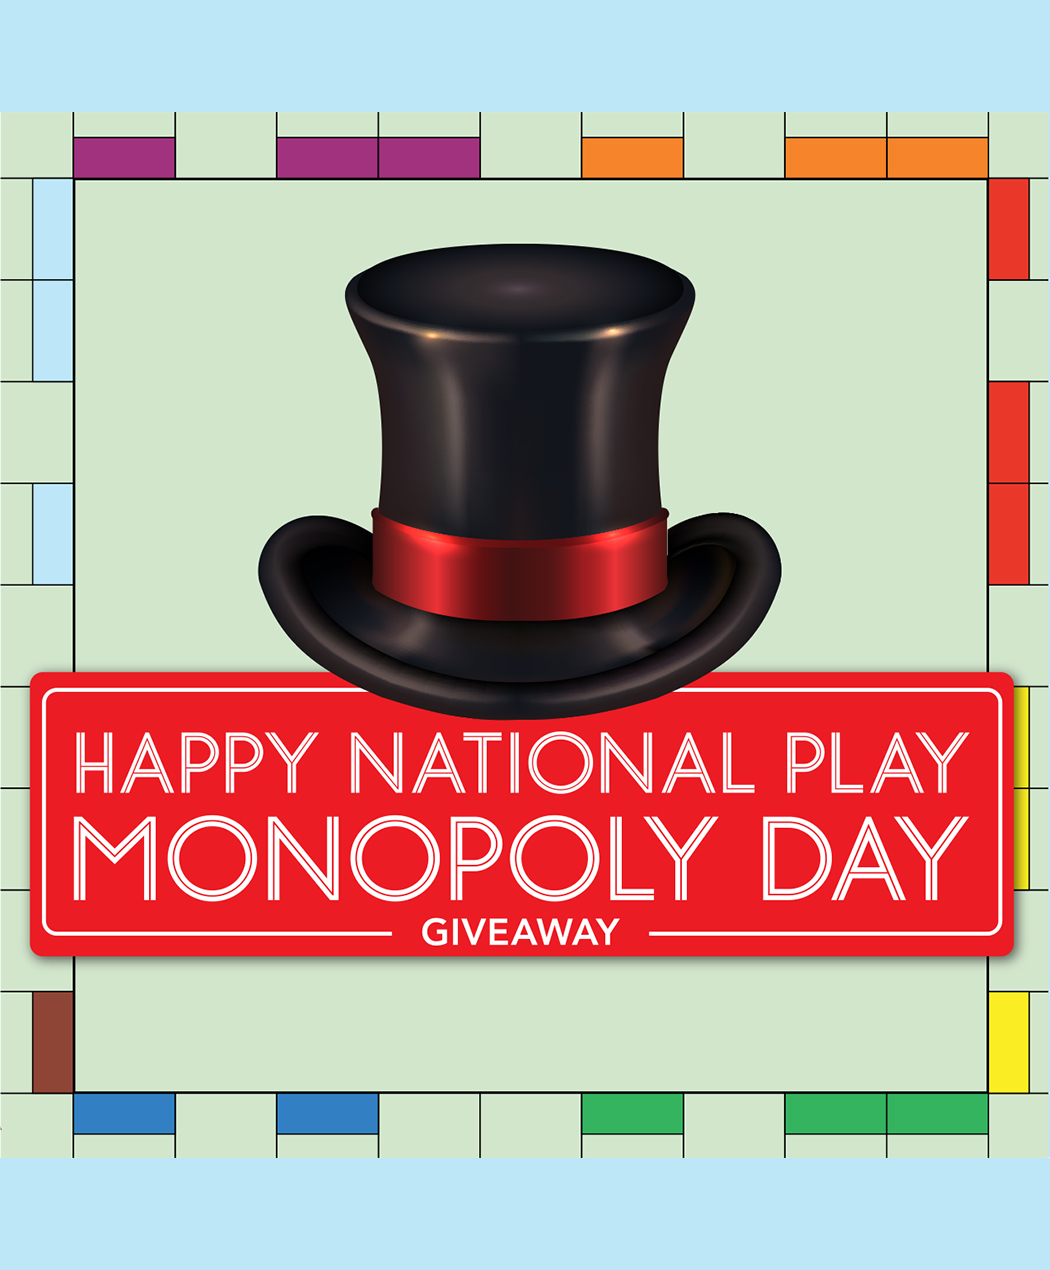 Monopoly Day